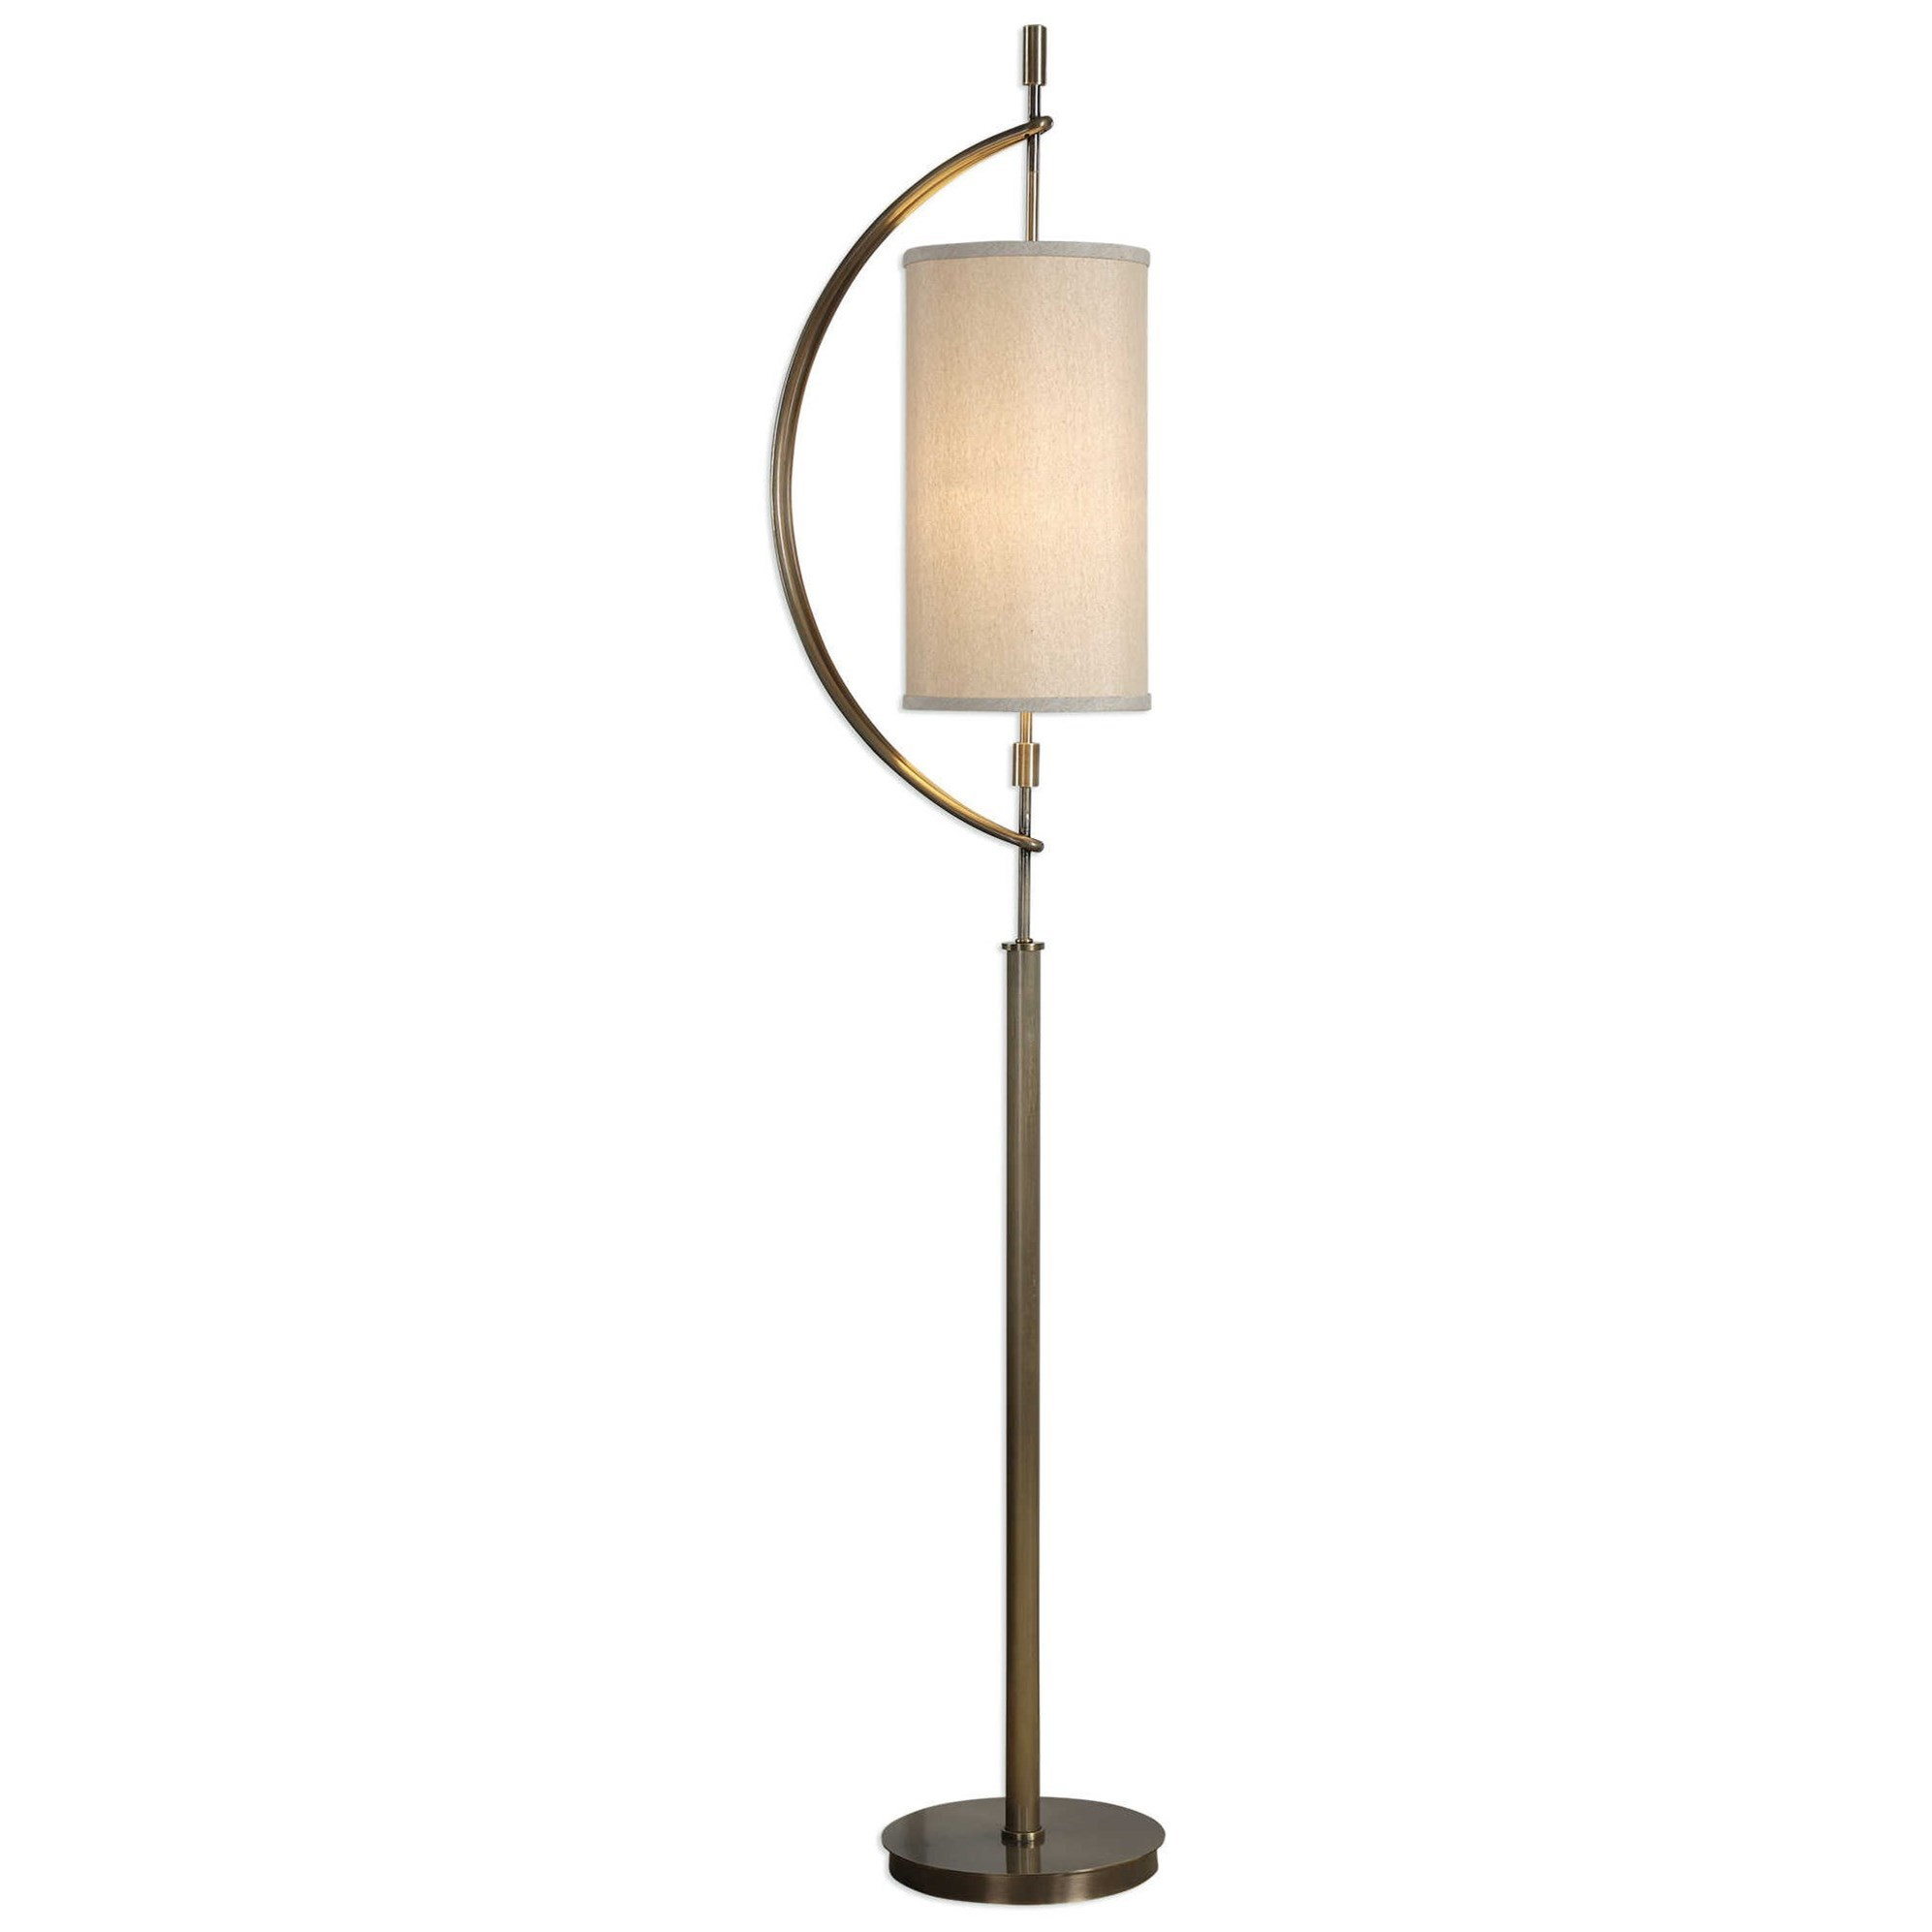 Uttermost lamps 28151 1 balaour antique brass floor lamp for Babyliss floor lamp antique brass